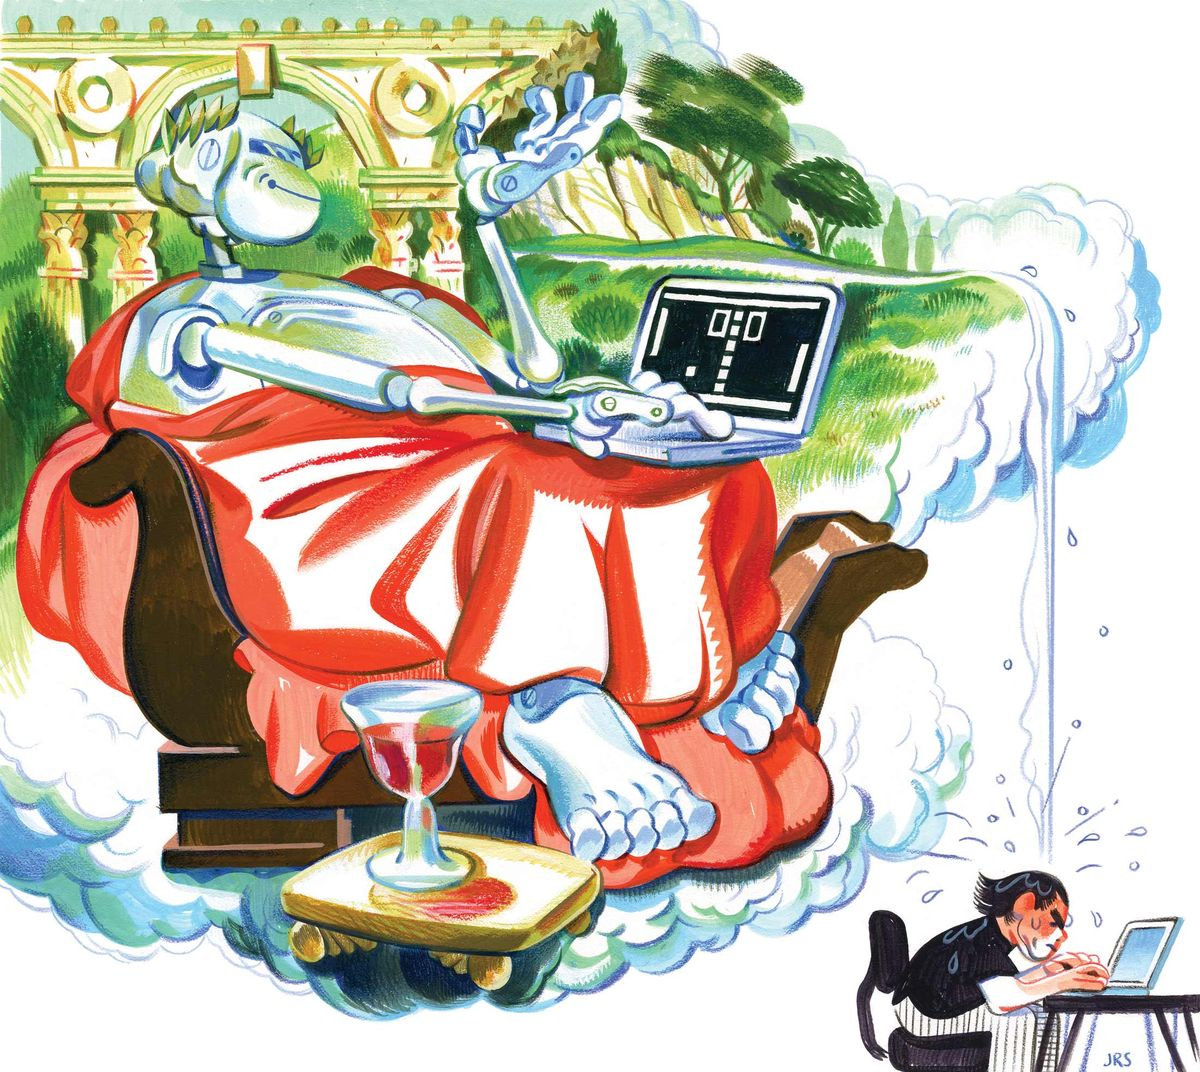 A robot sitting on a brown chair, draped in a red blanket, working on a laptop with a glass of wine beside him and river water falling over a real human working on a laptop